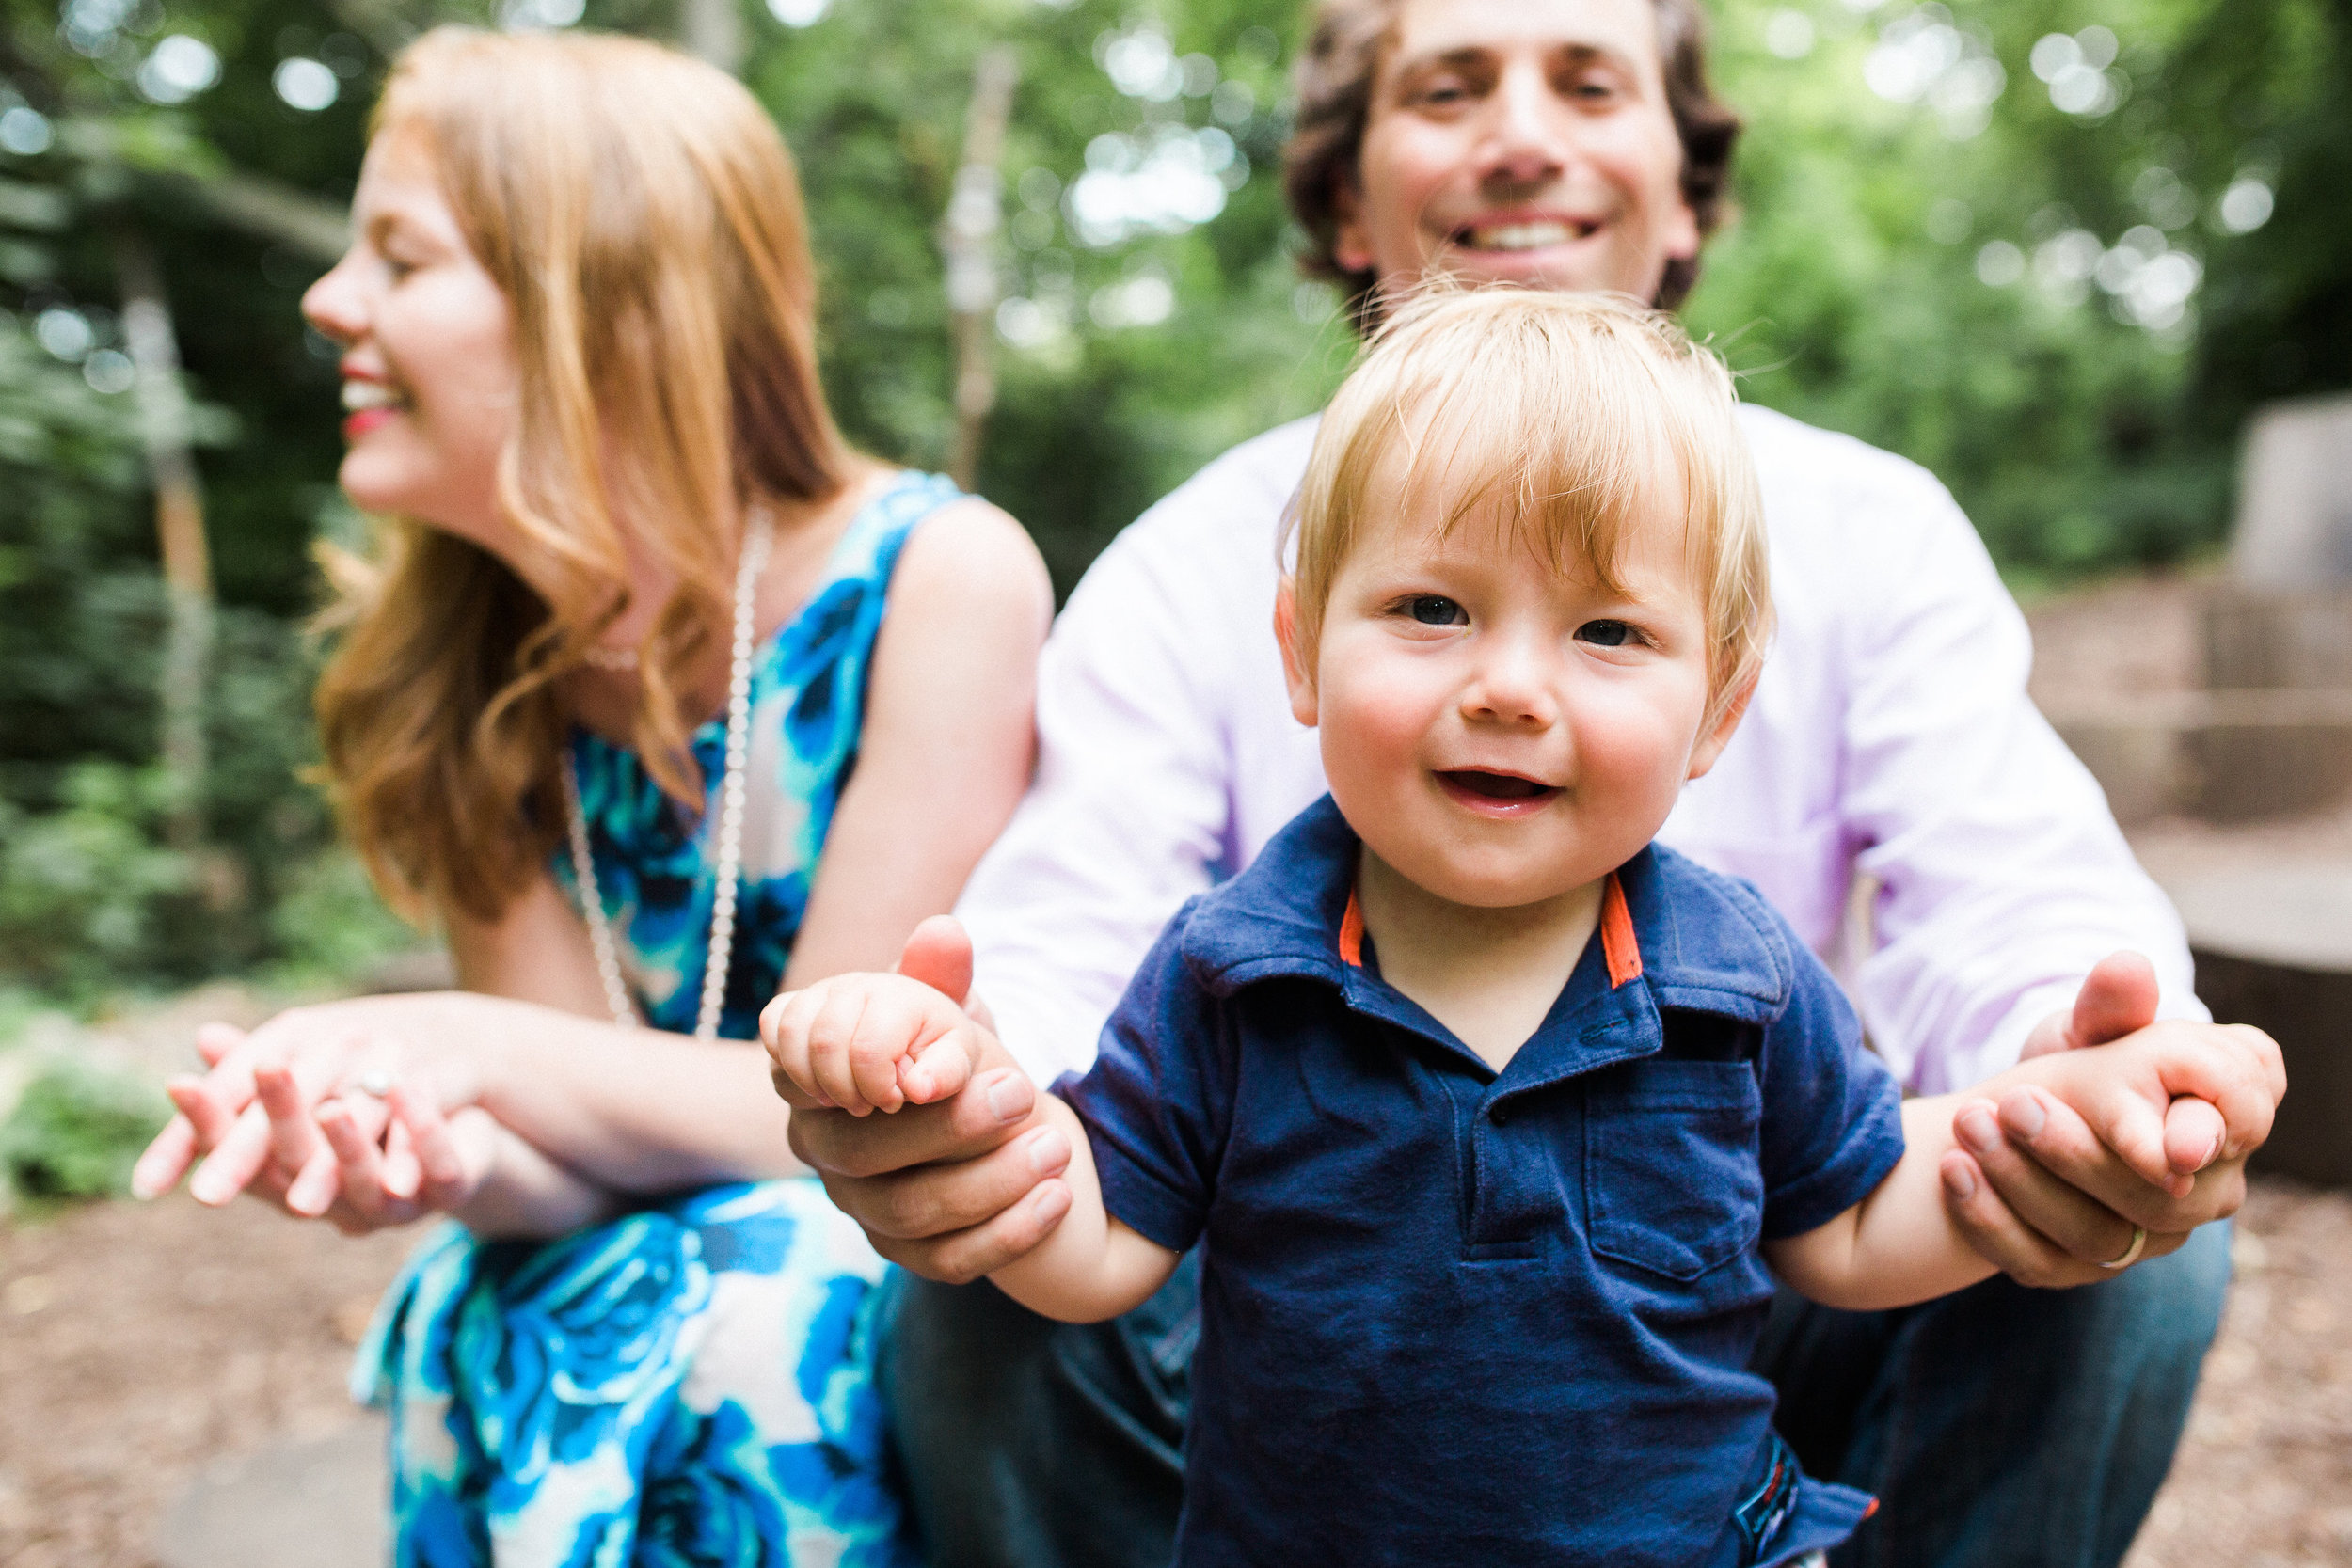 prospect-park-family-photography_natural-playground-9-2.jpg